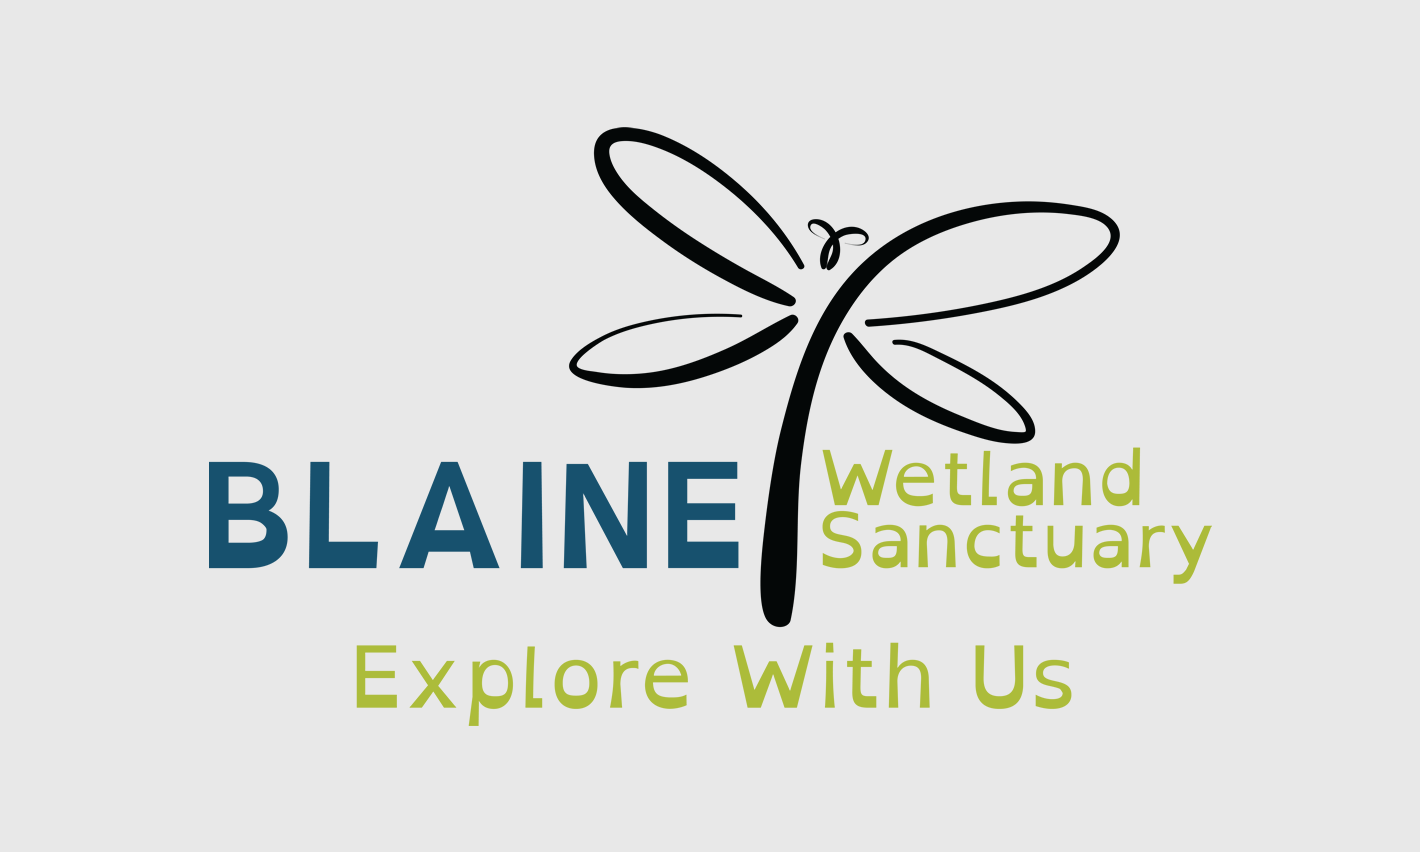 Blaine Wetland Sanctuary